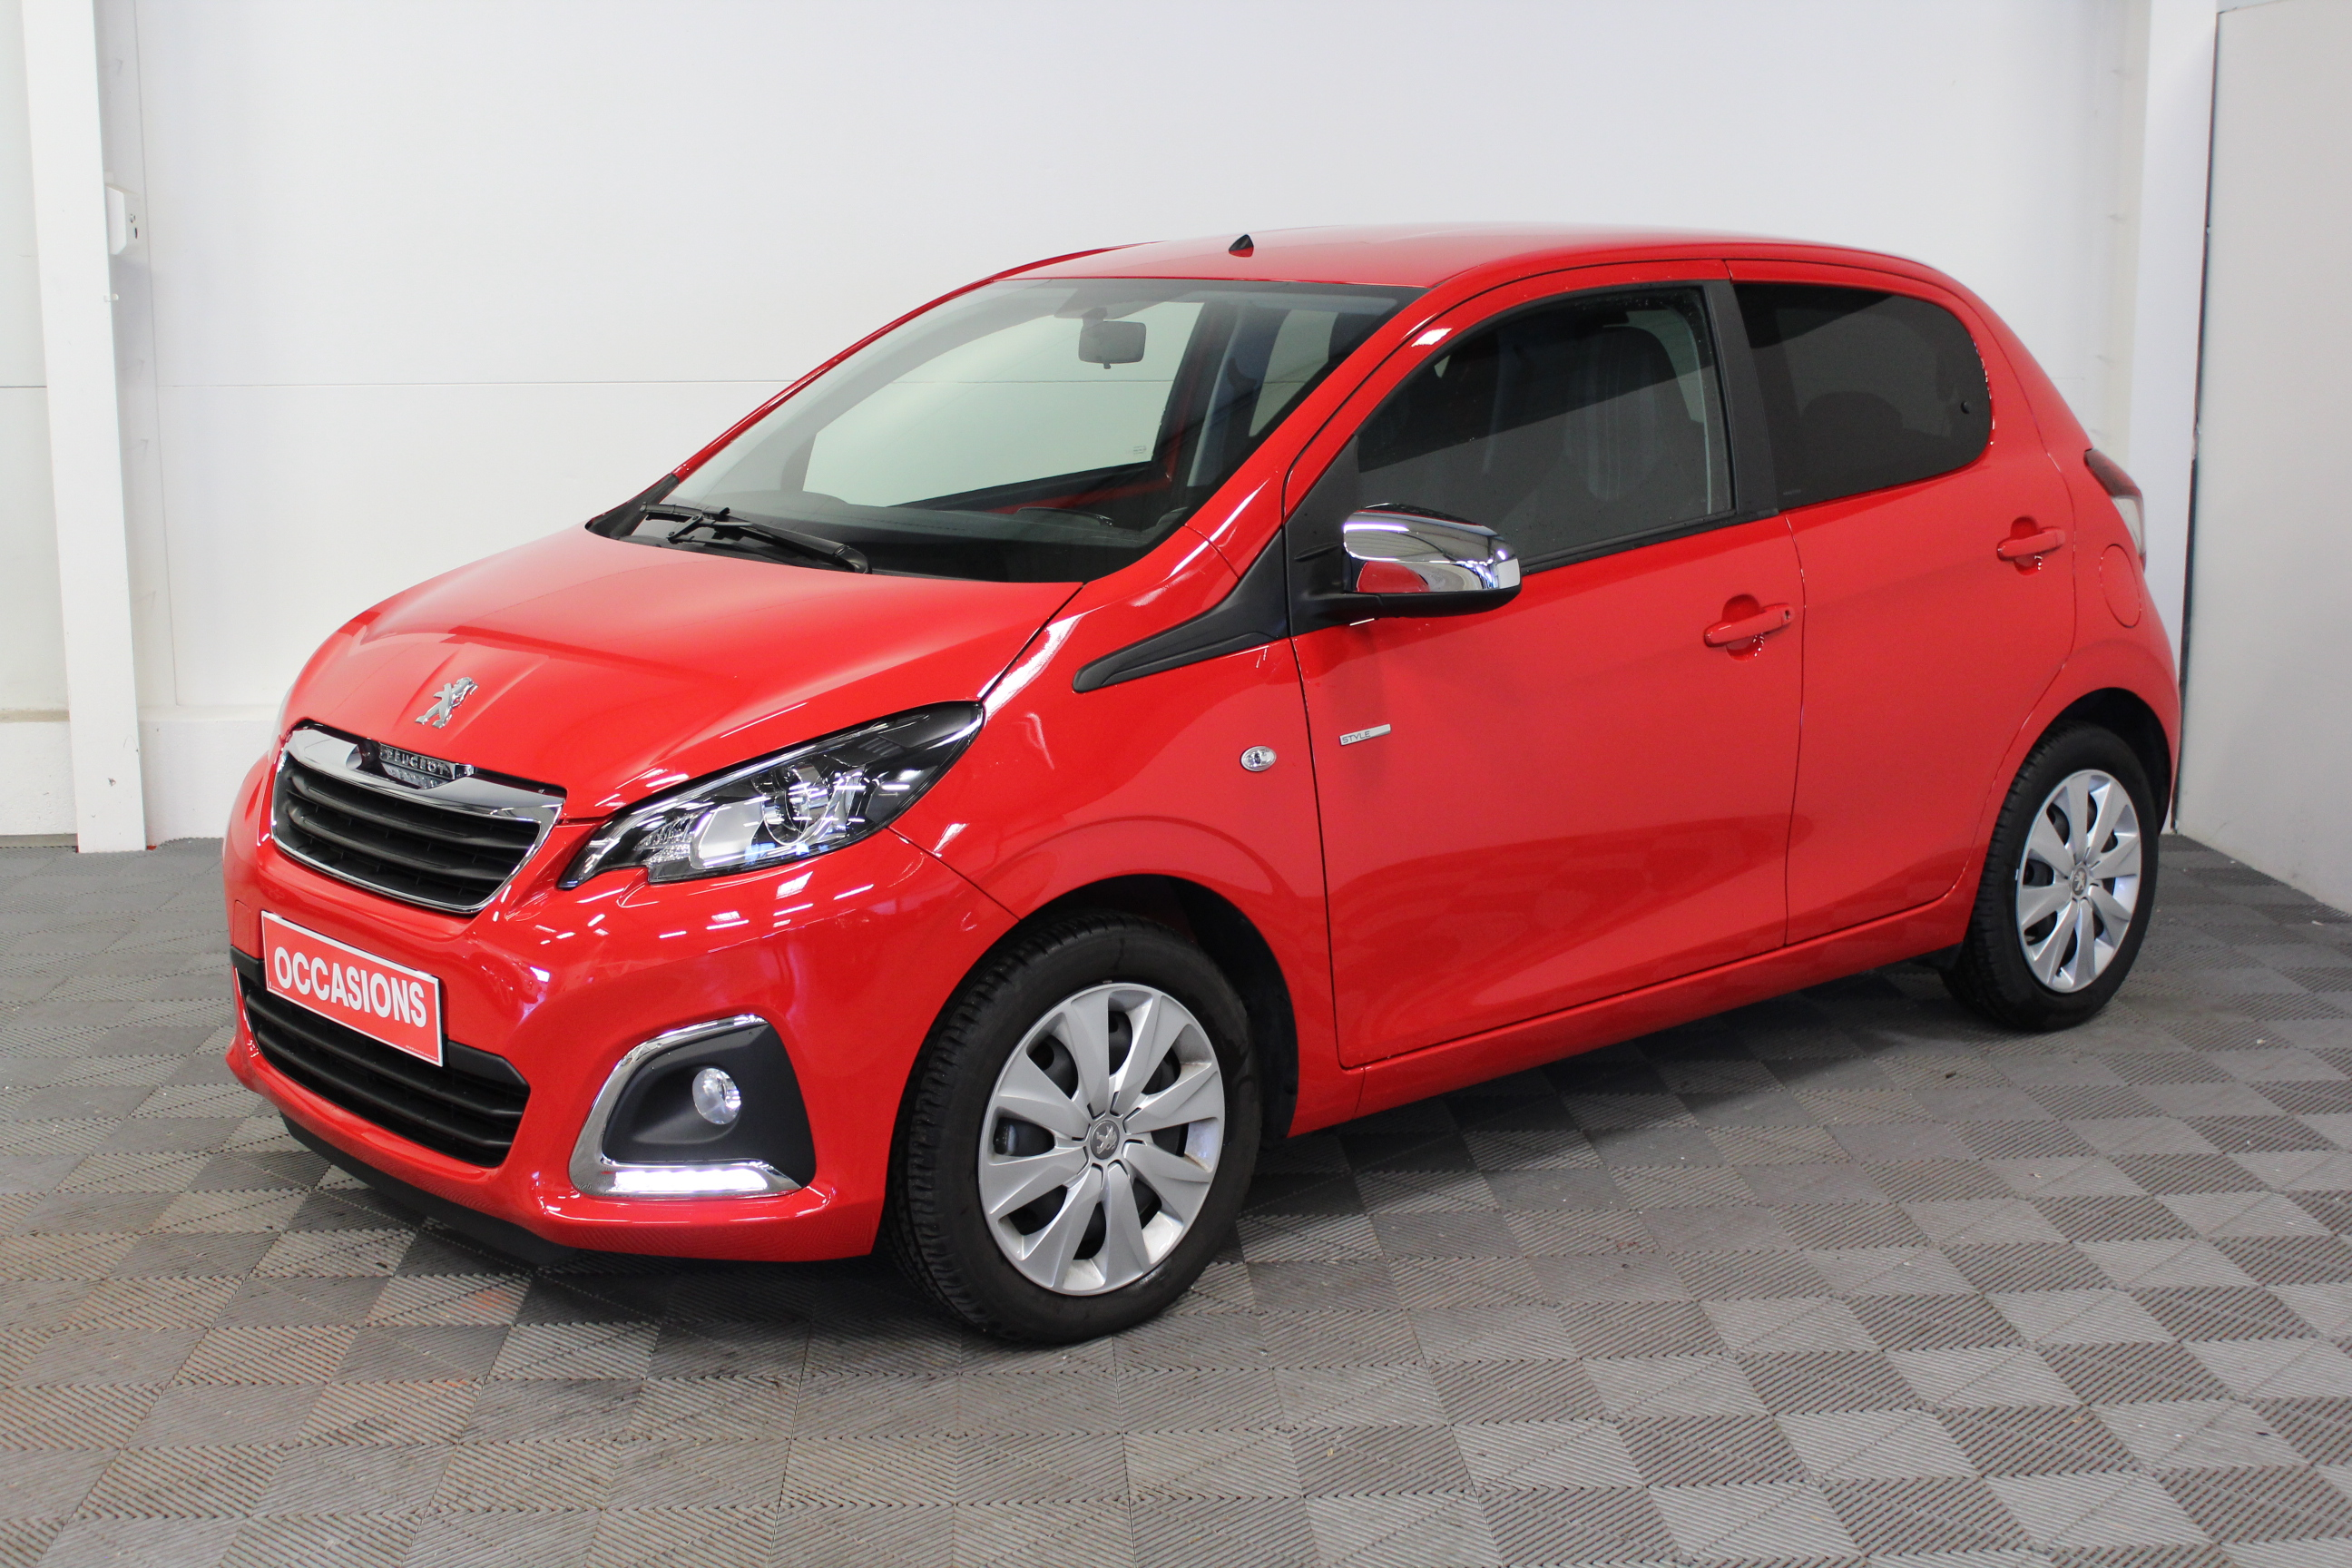 PEUGEOT 108 1.0 VTi 68 ch Style d'occasion